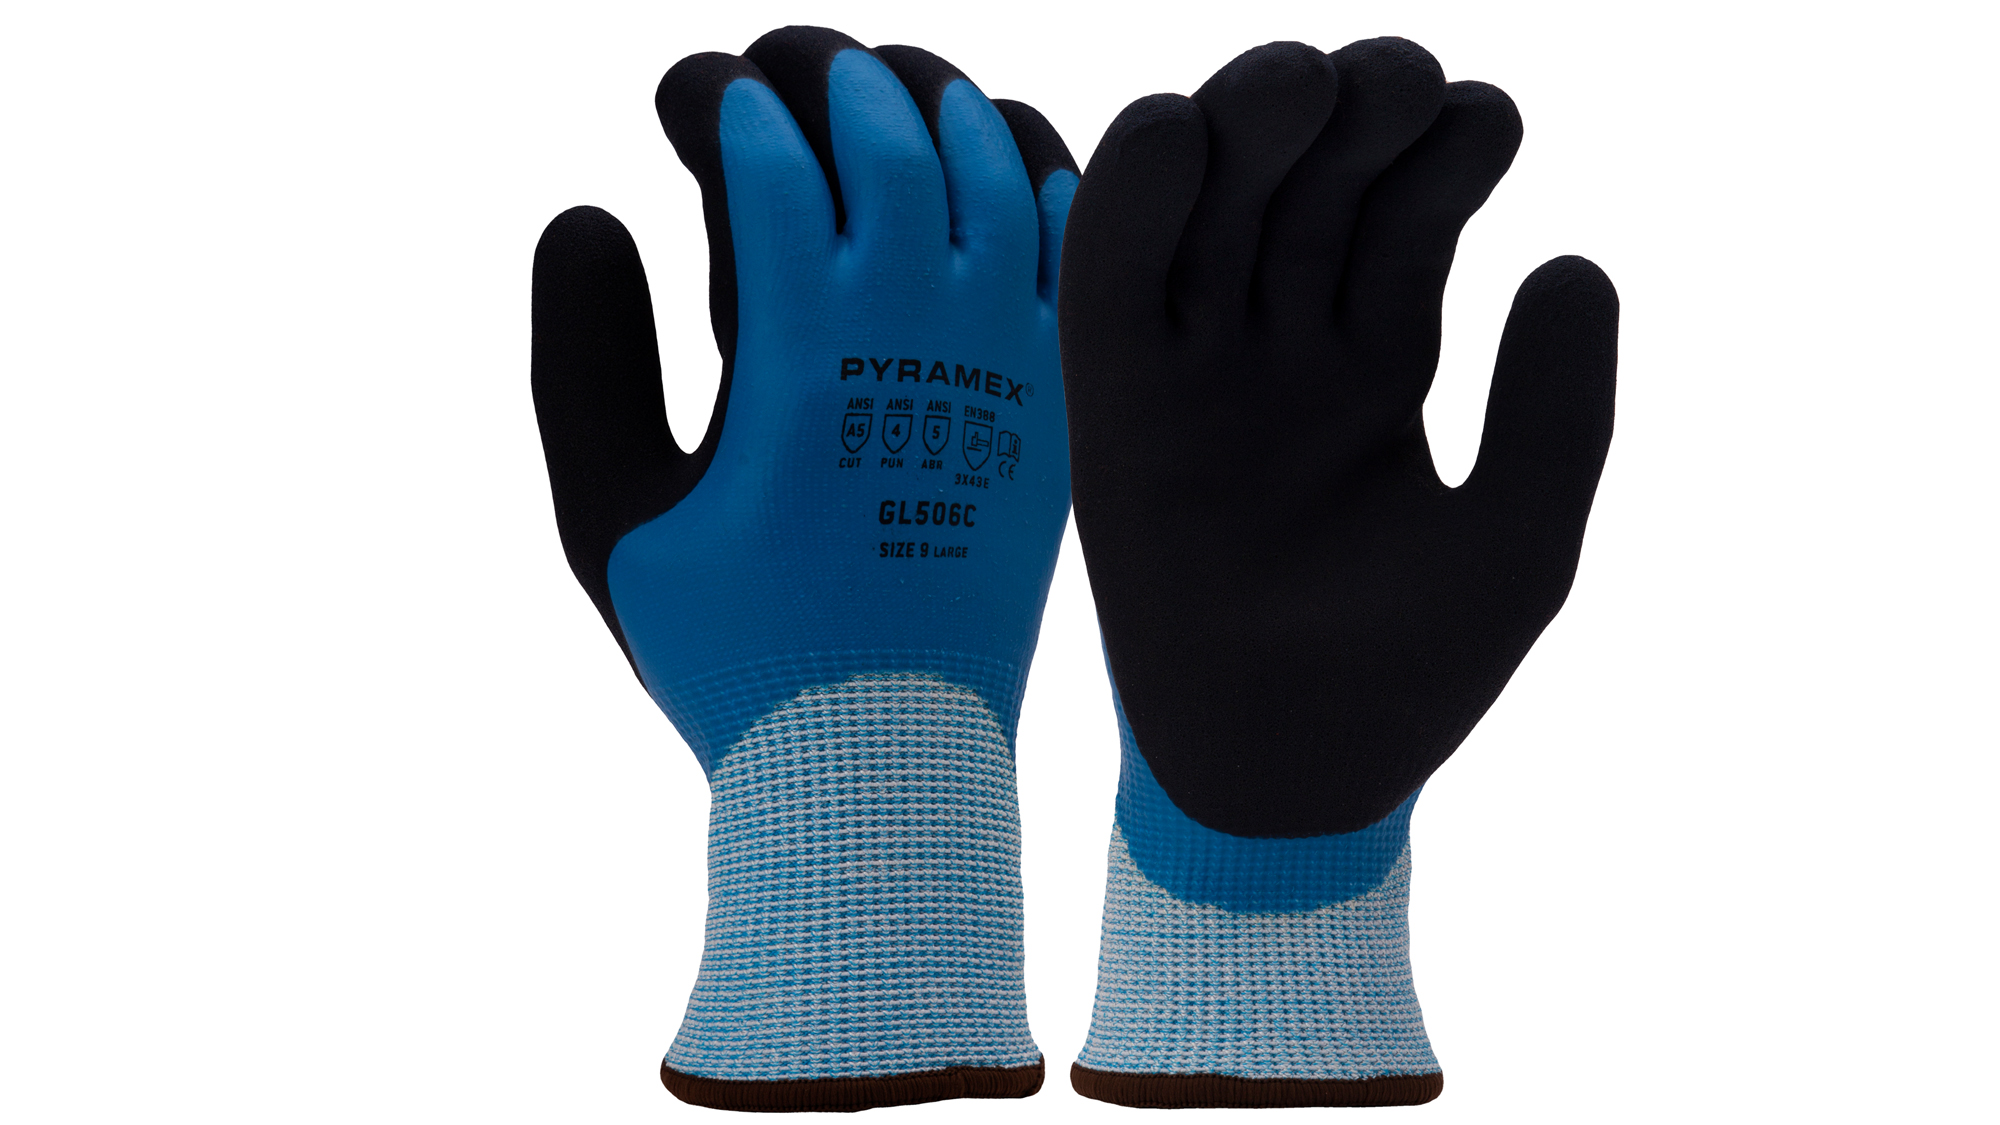 Pyramex GL506C Insulated Sandy Latex Gloves